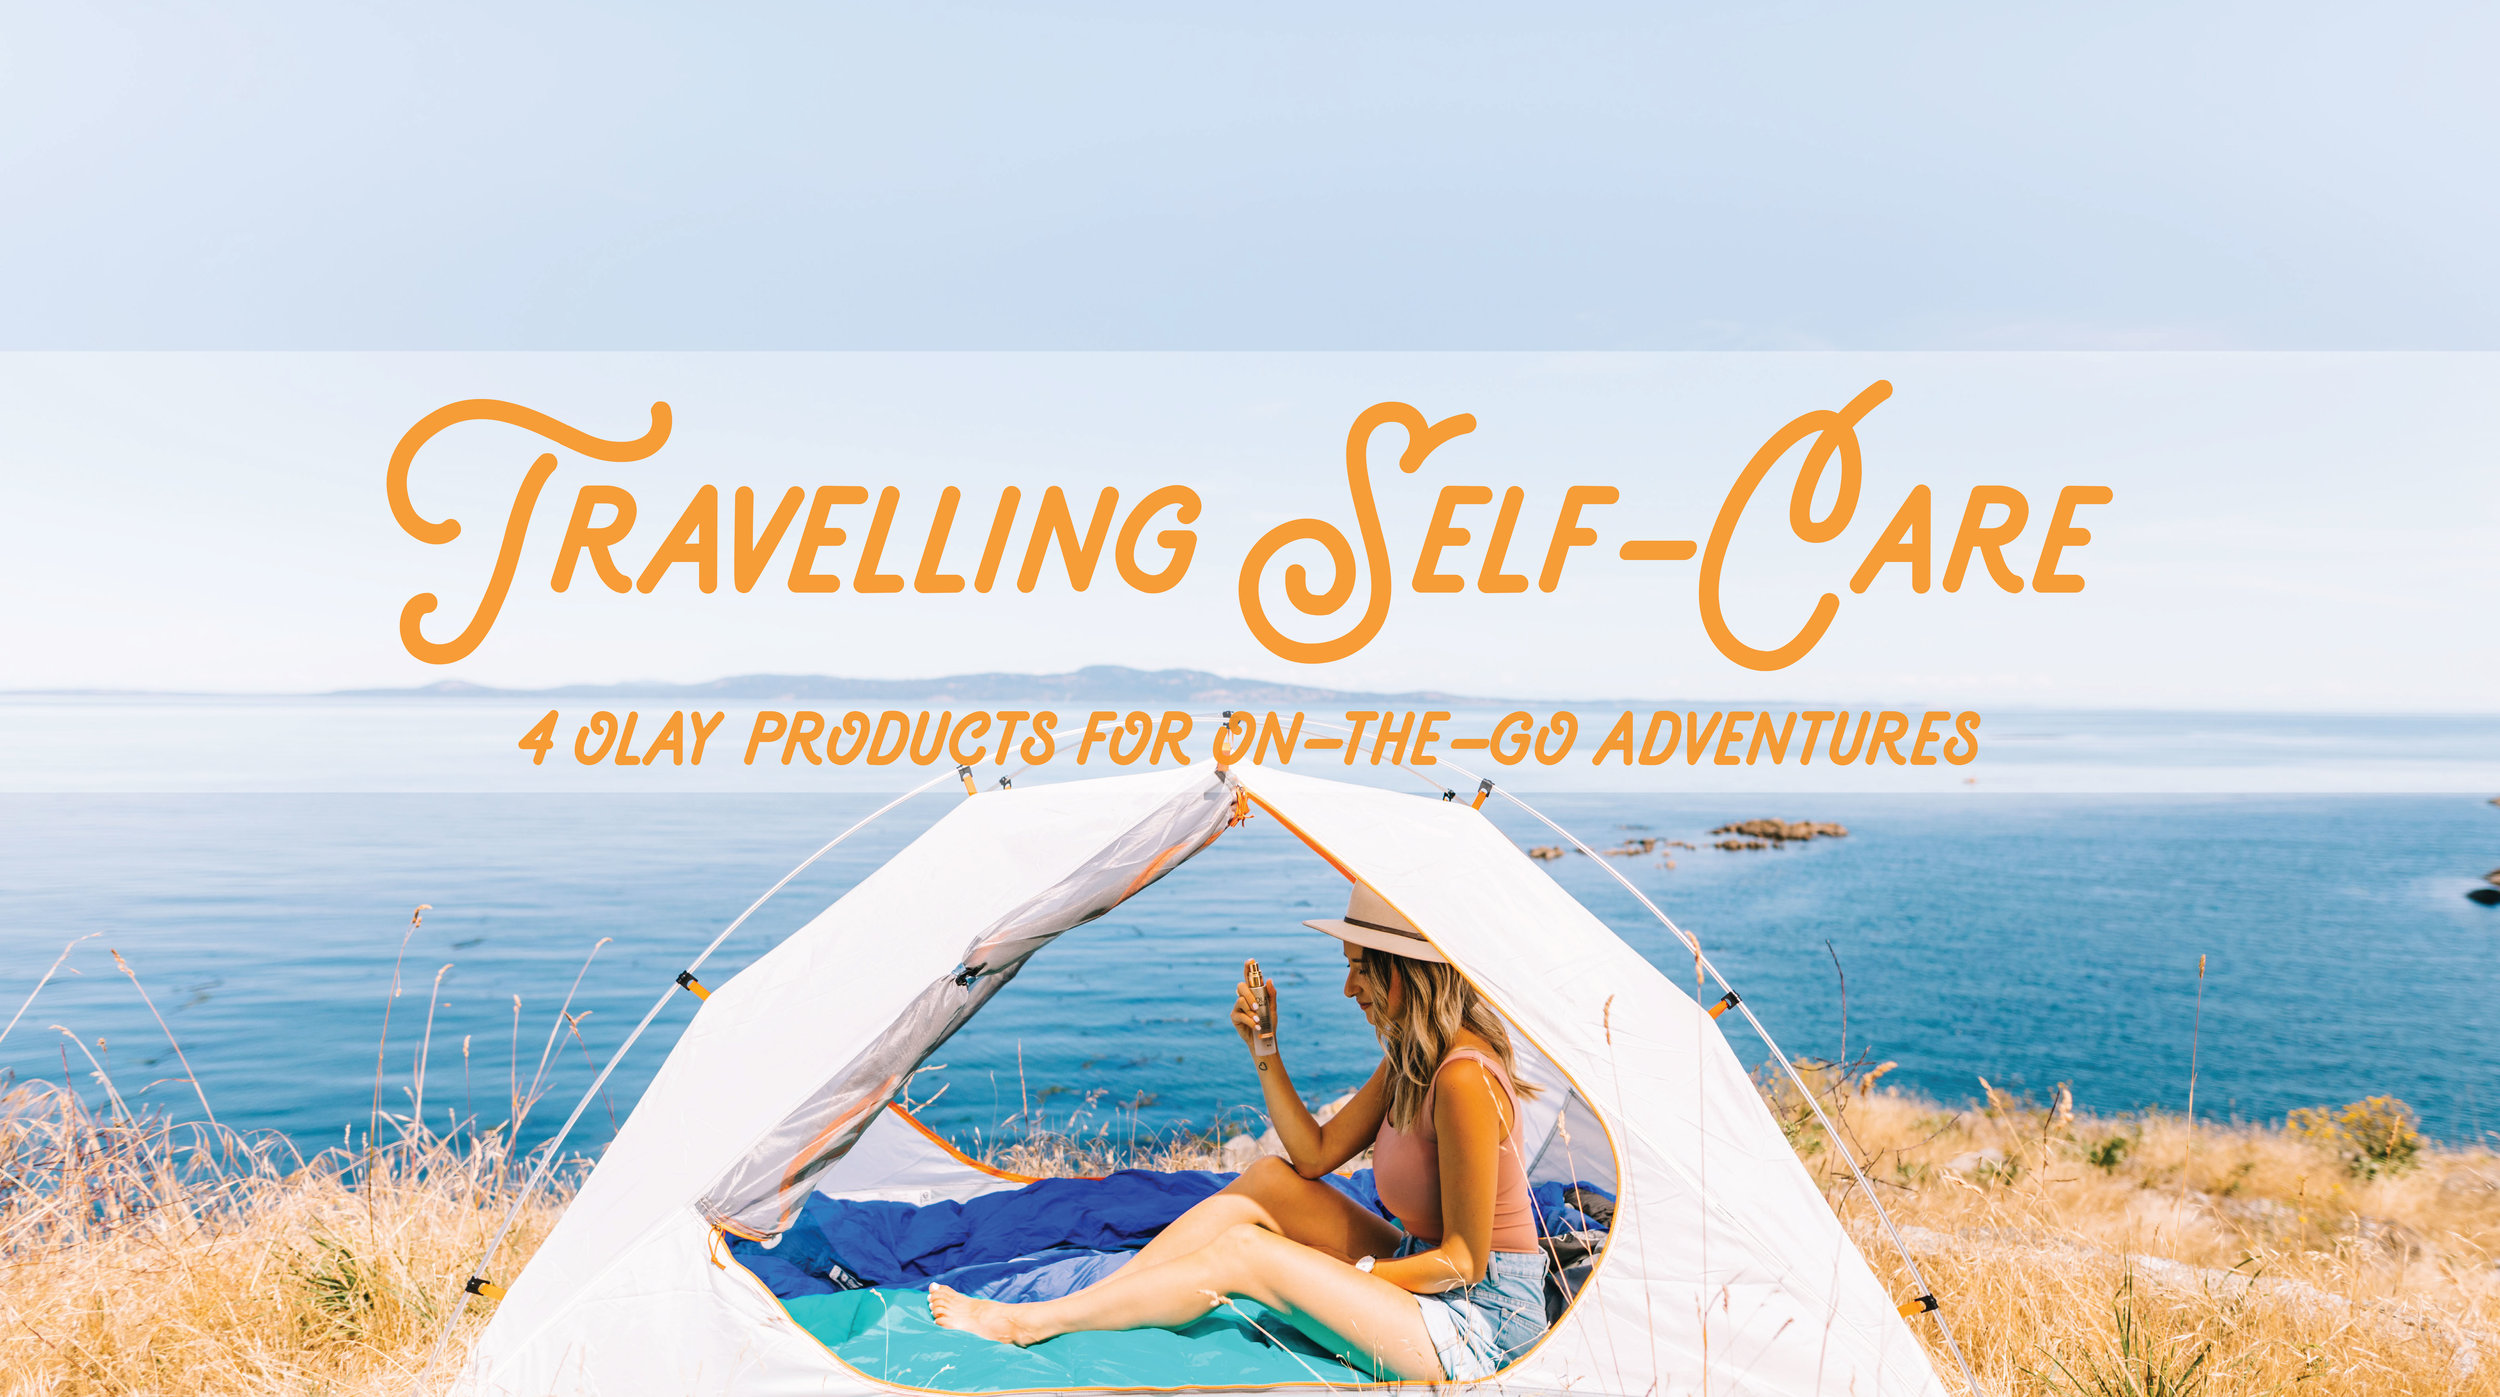 Travelling Self-Care: 4 Olay products for on-the-go adventures: Facial Mist - Olay Mist Ultimate Hydration Essence Energizing With Vitamin C & Bergamot